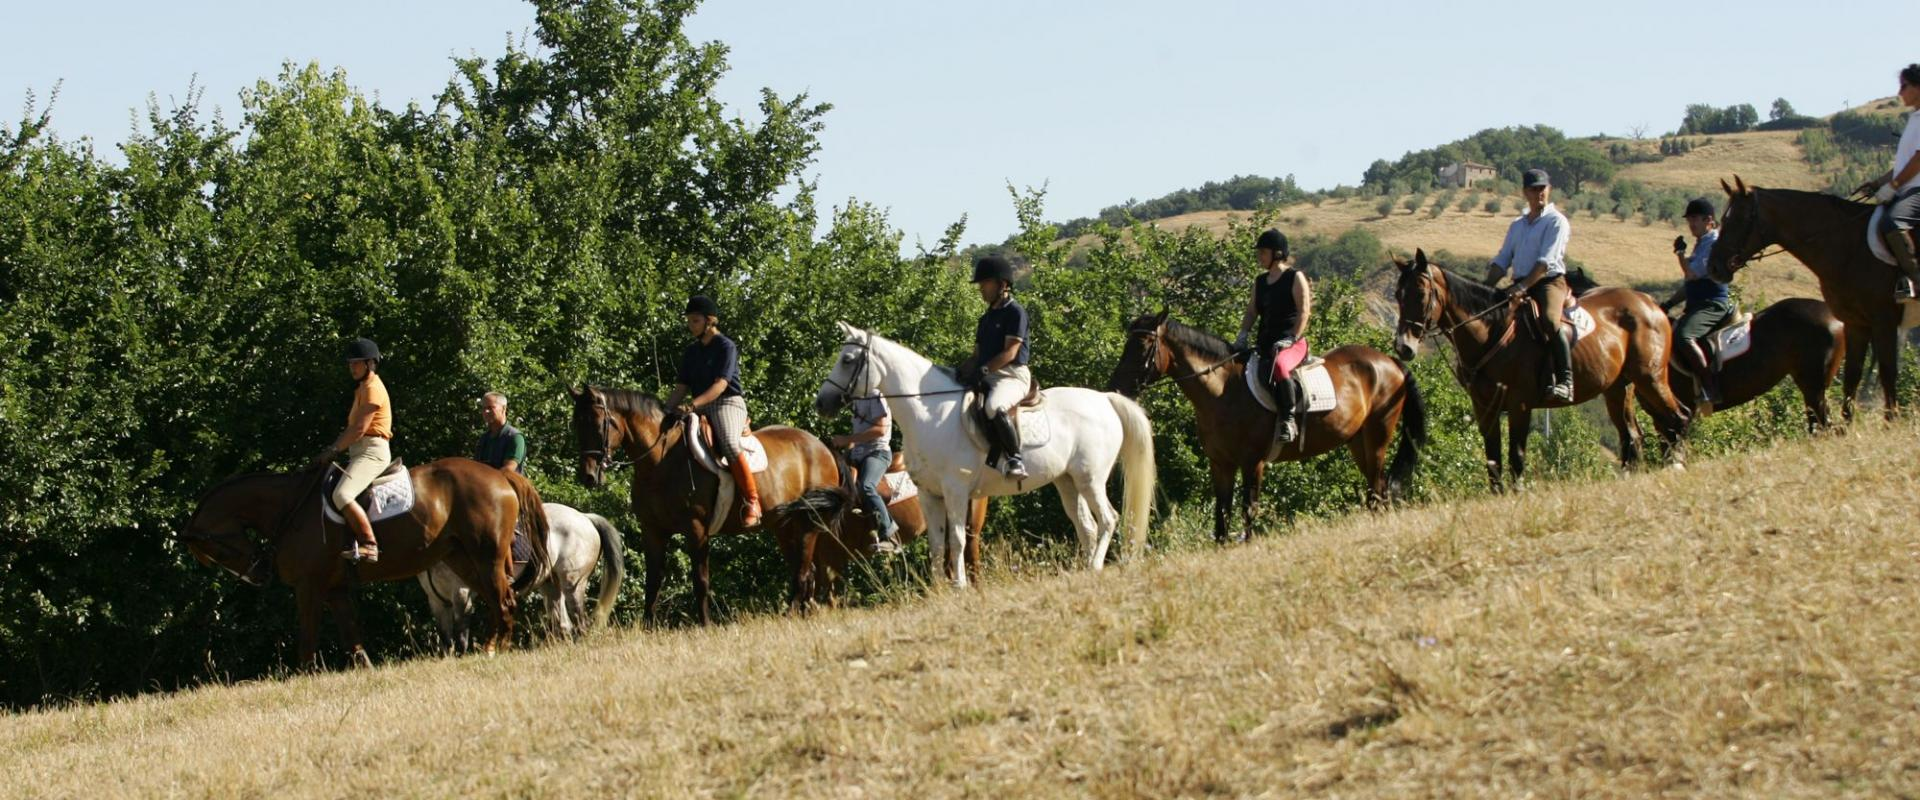 Equitation The Il Poggio Farmhouse and Resort in Siena